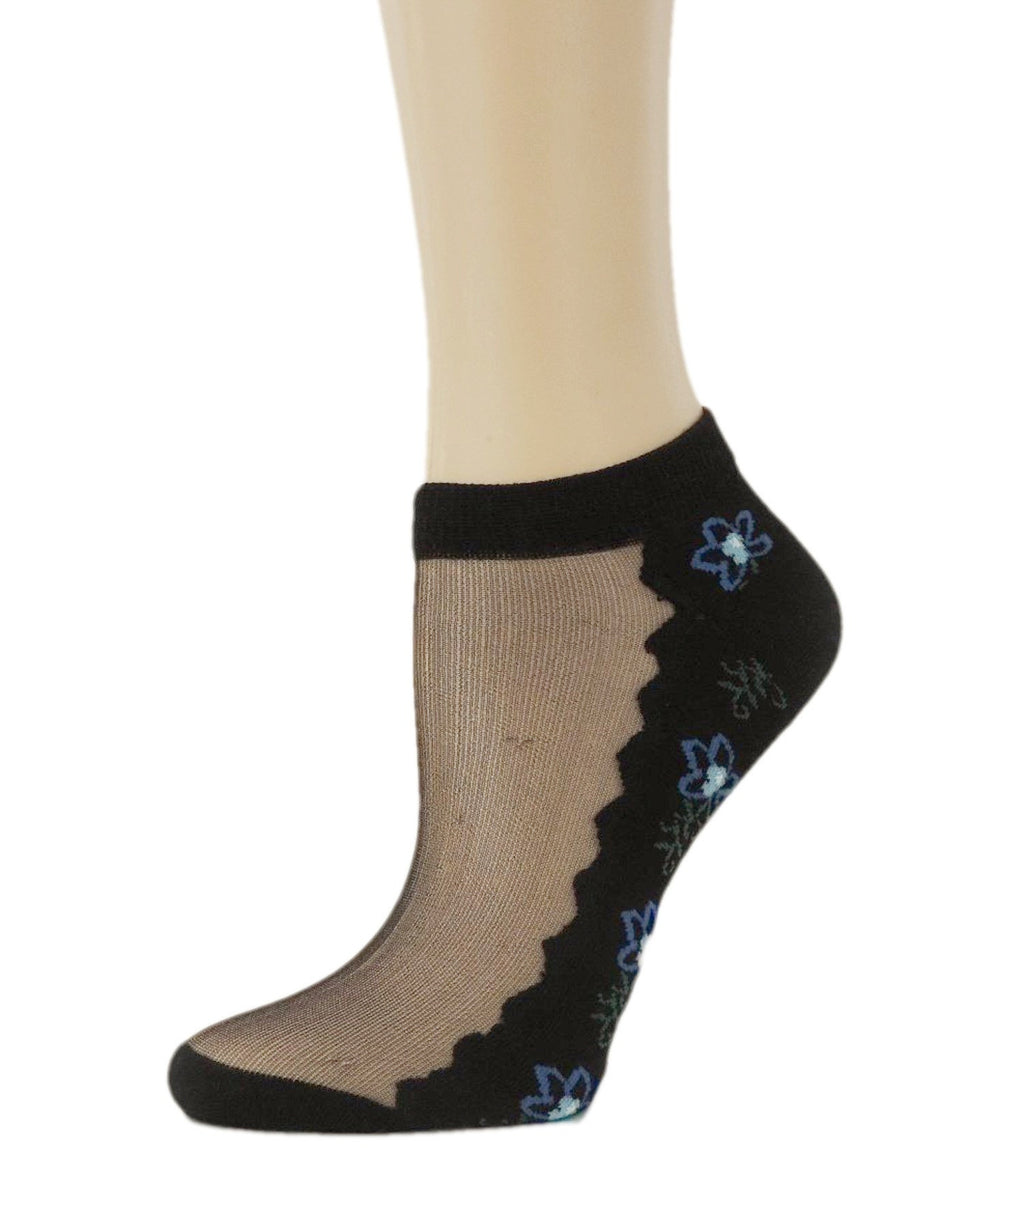 Charming Seablue Ankle Sheer Socks - Global Trendz Fashion®